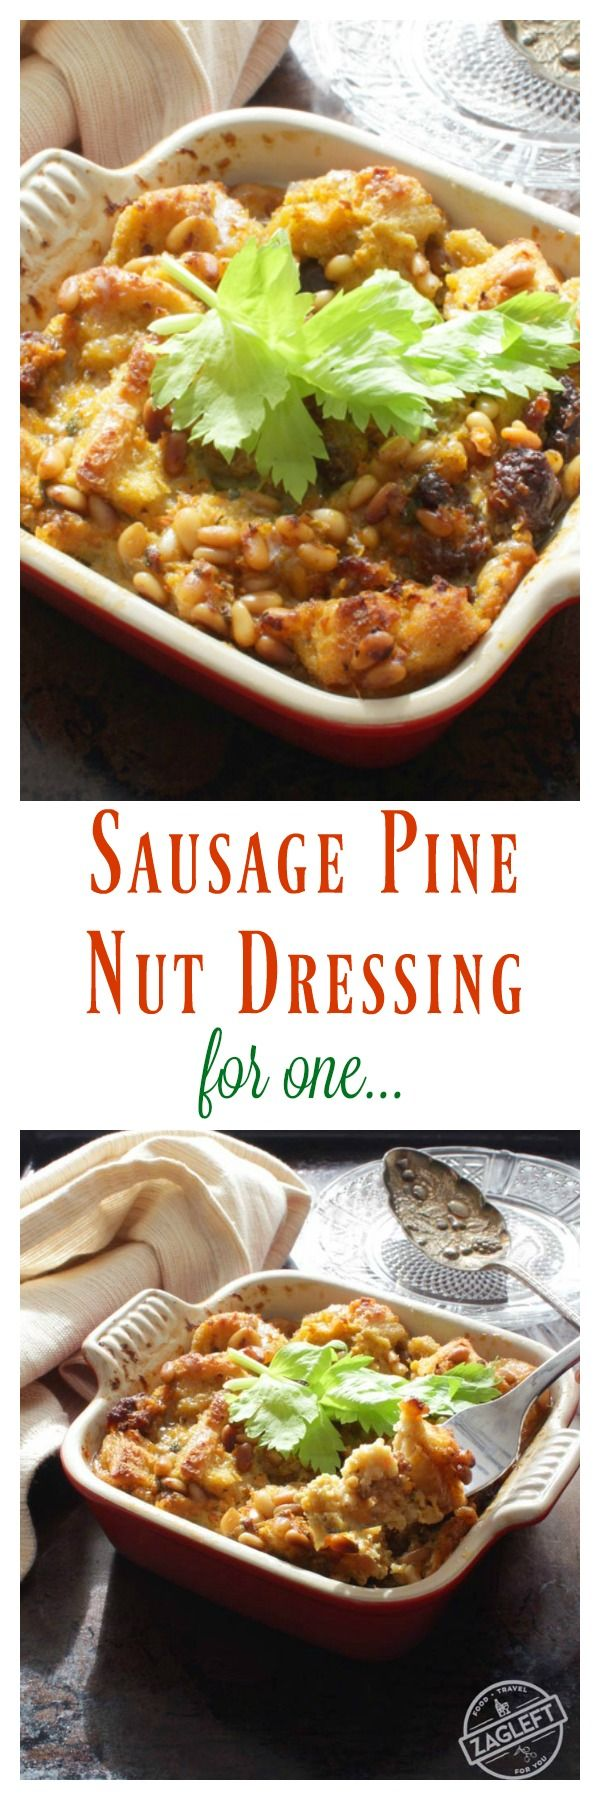 Sausage Pine Nut Dressing For One, filled with crunchy toasted pine nuts, spicy sausage and morsels of soft sourdough bread. It's a single serving version of my always-requested Thanksgiving dressing.